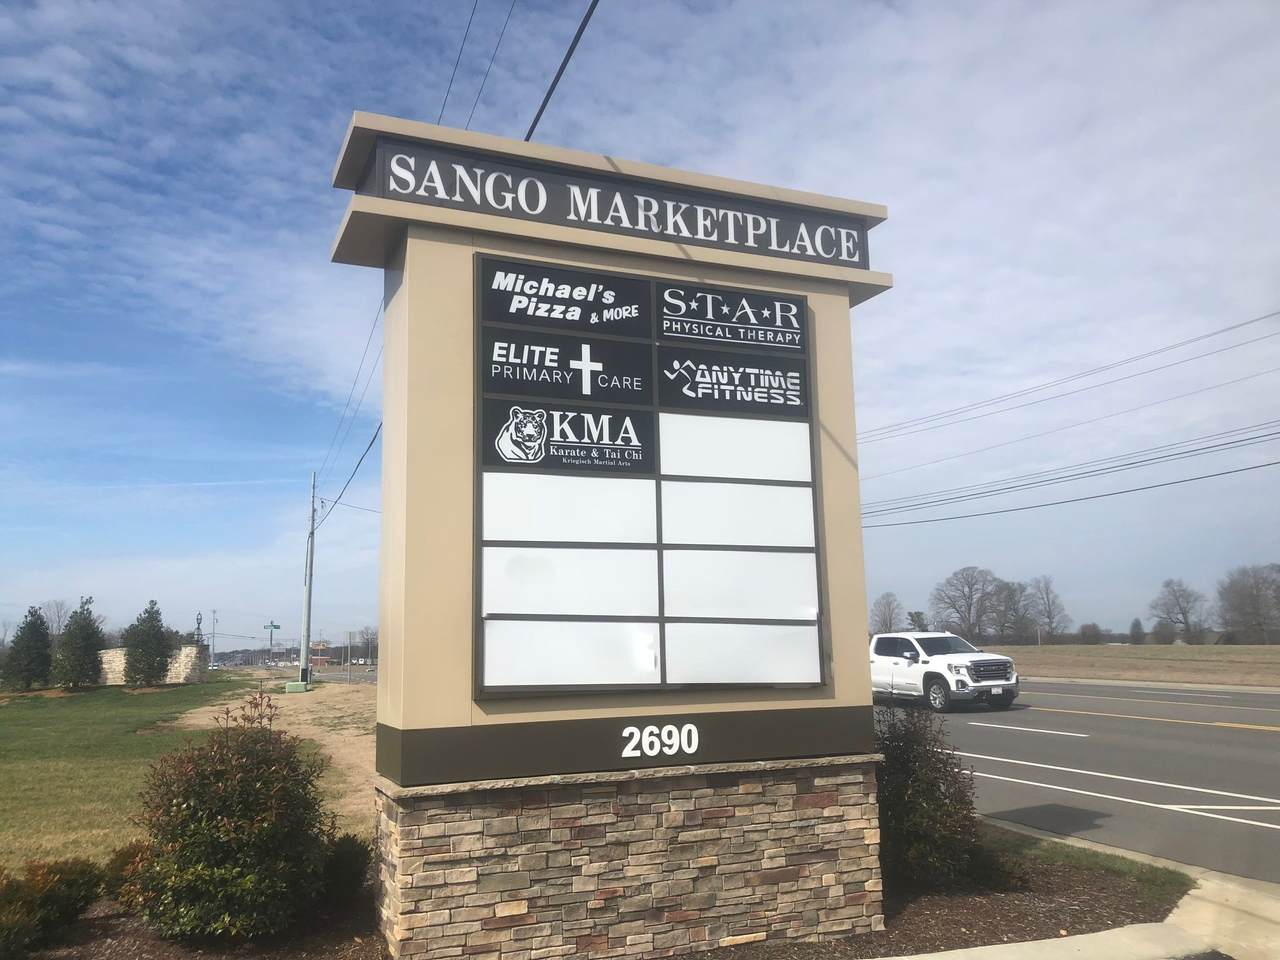 https://bt-photos.global.ssl.fastly.net/nashville/1280_boomver_1_RTC2122095-1.jpg